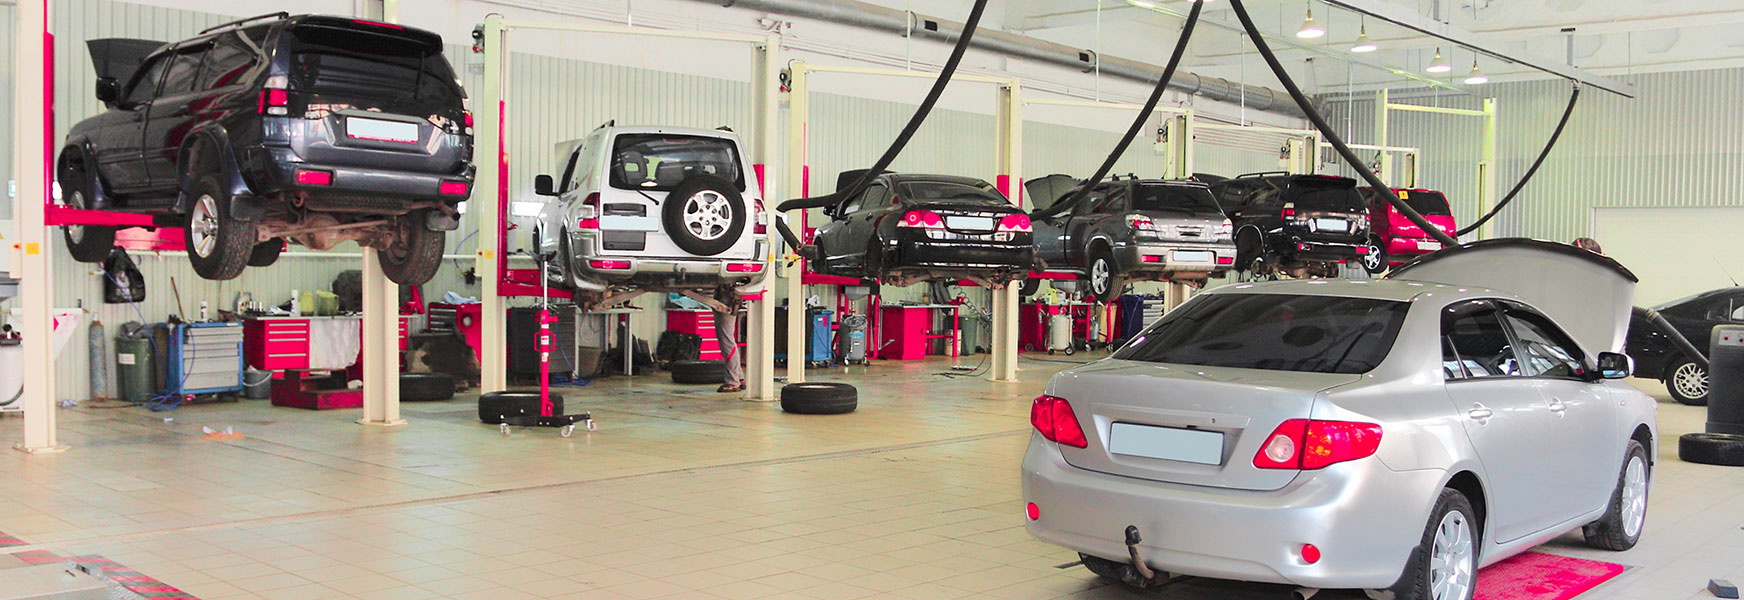 Garage with a line of cars on lifts